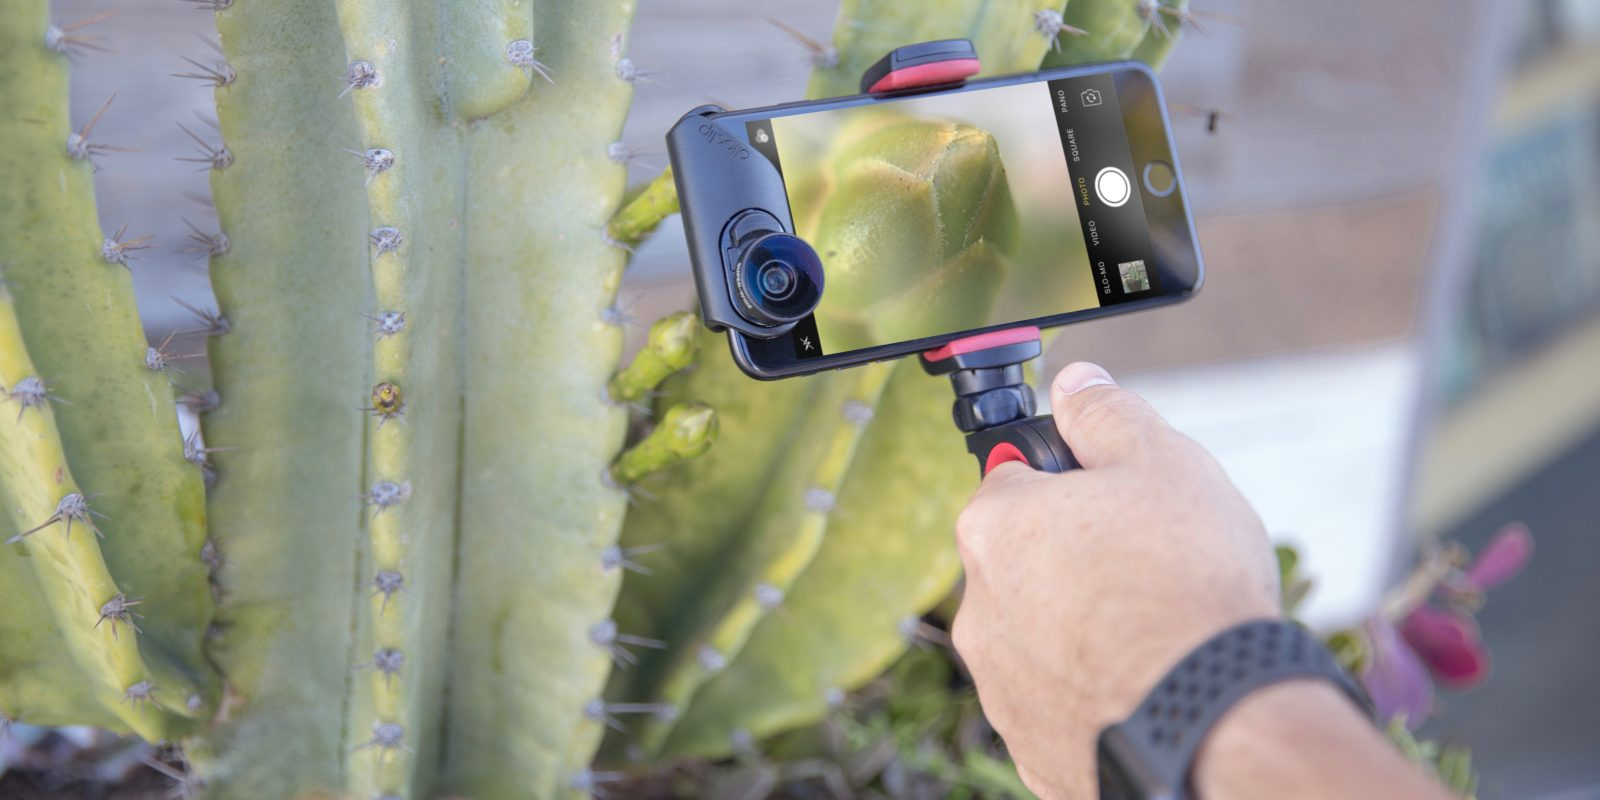 new concept 0b122 c9037 Olloclip and Incase launching limited edition Filmer's Kit iPhone ...